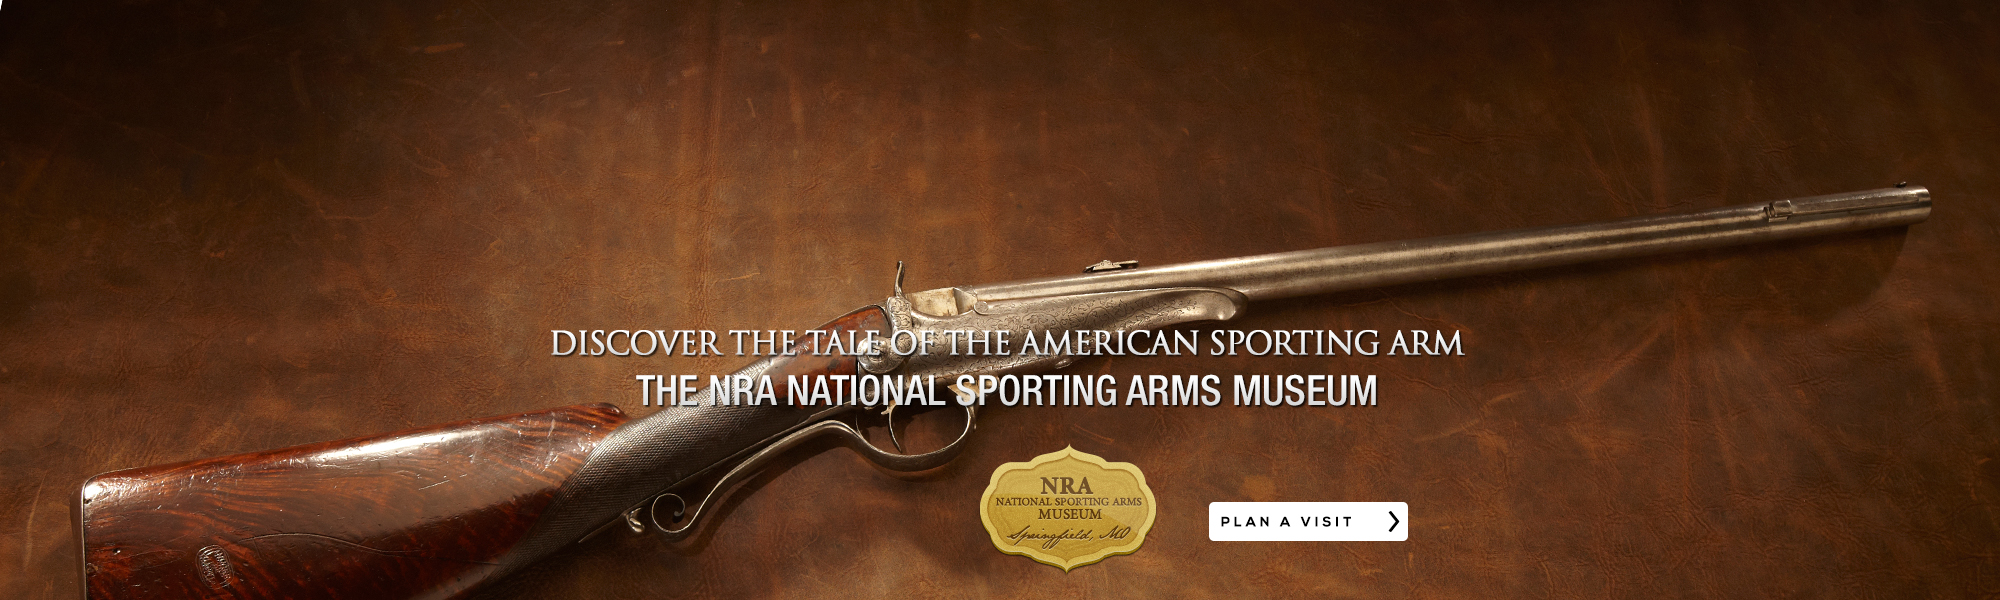 NRA National Sportings Arms Museum